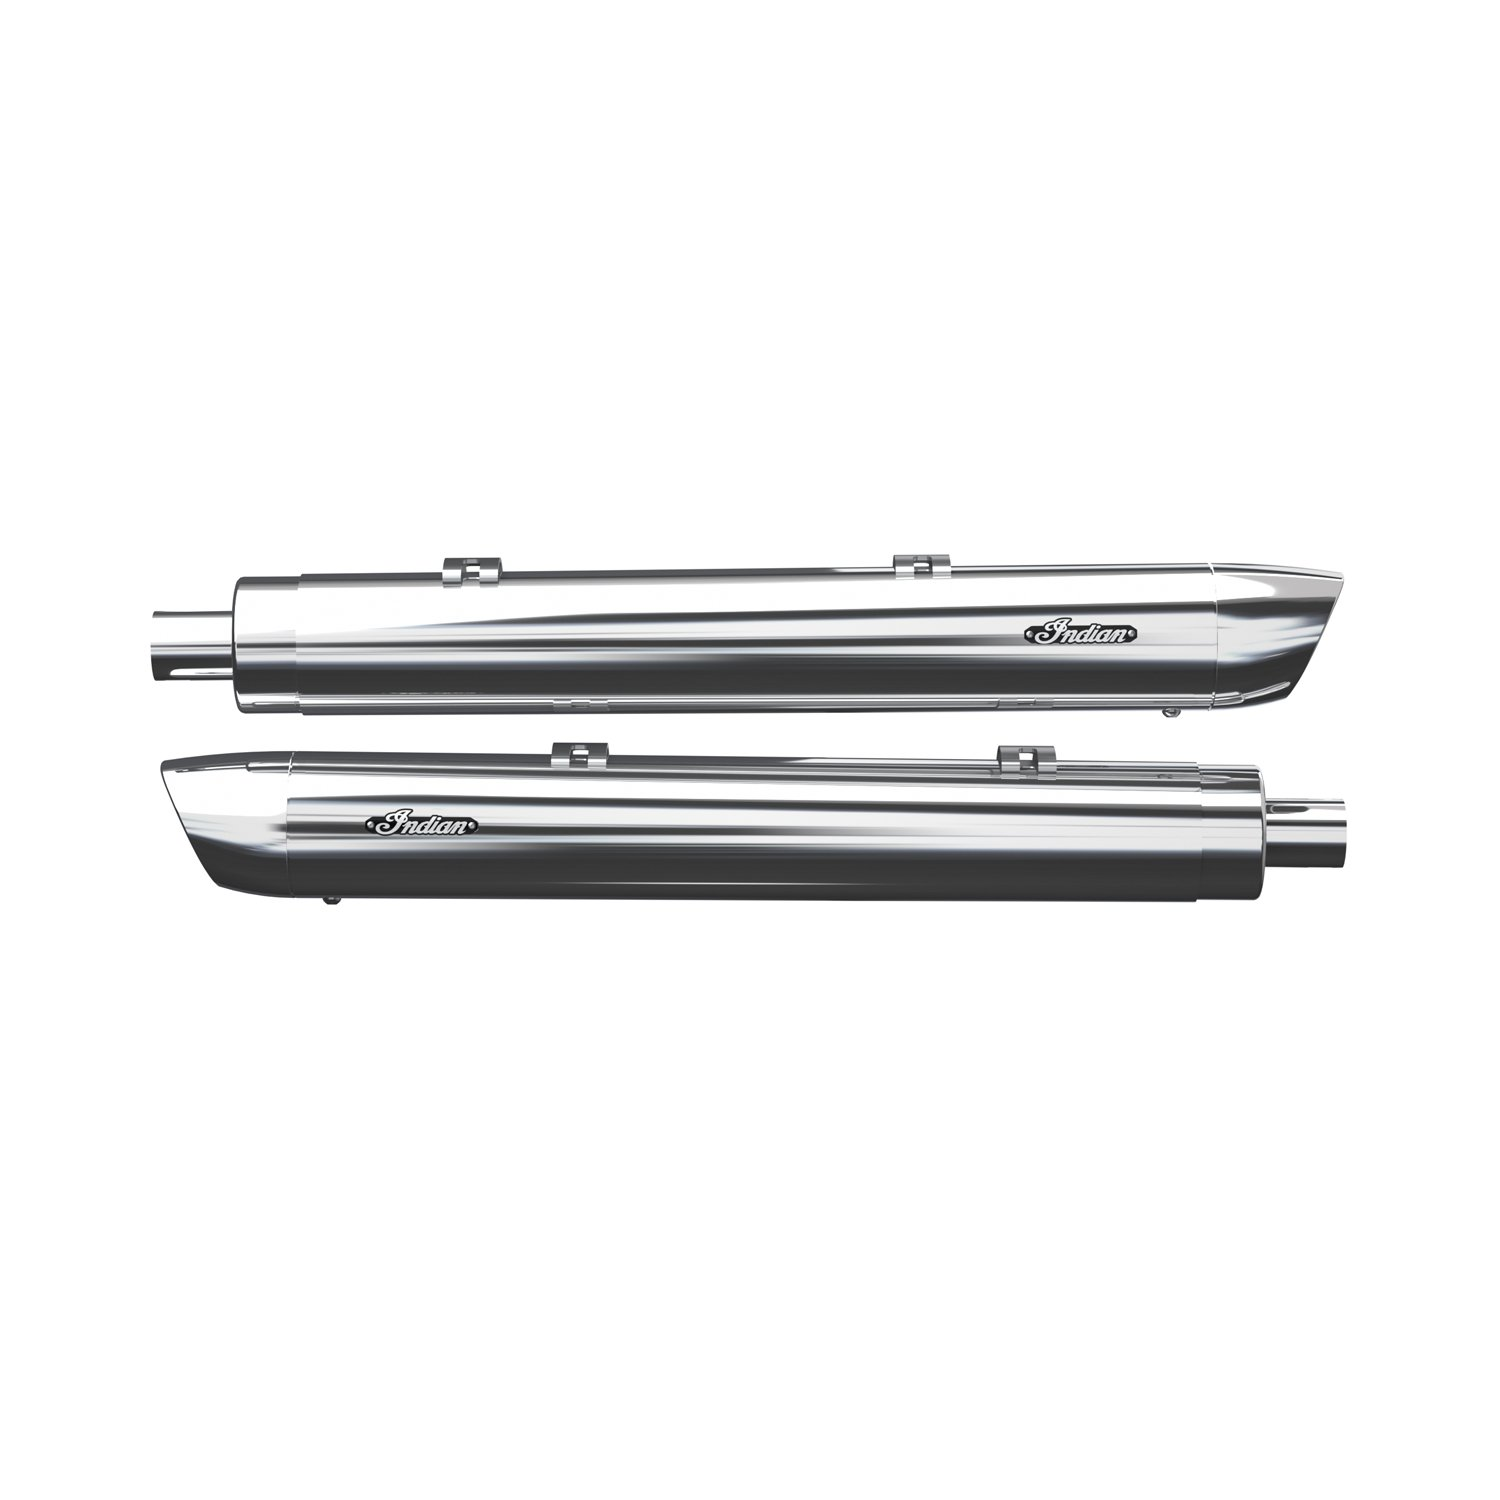 Stage 1 Oval Slip-On Muffler Kit – Chrome